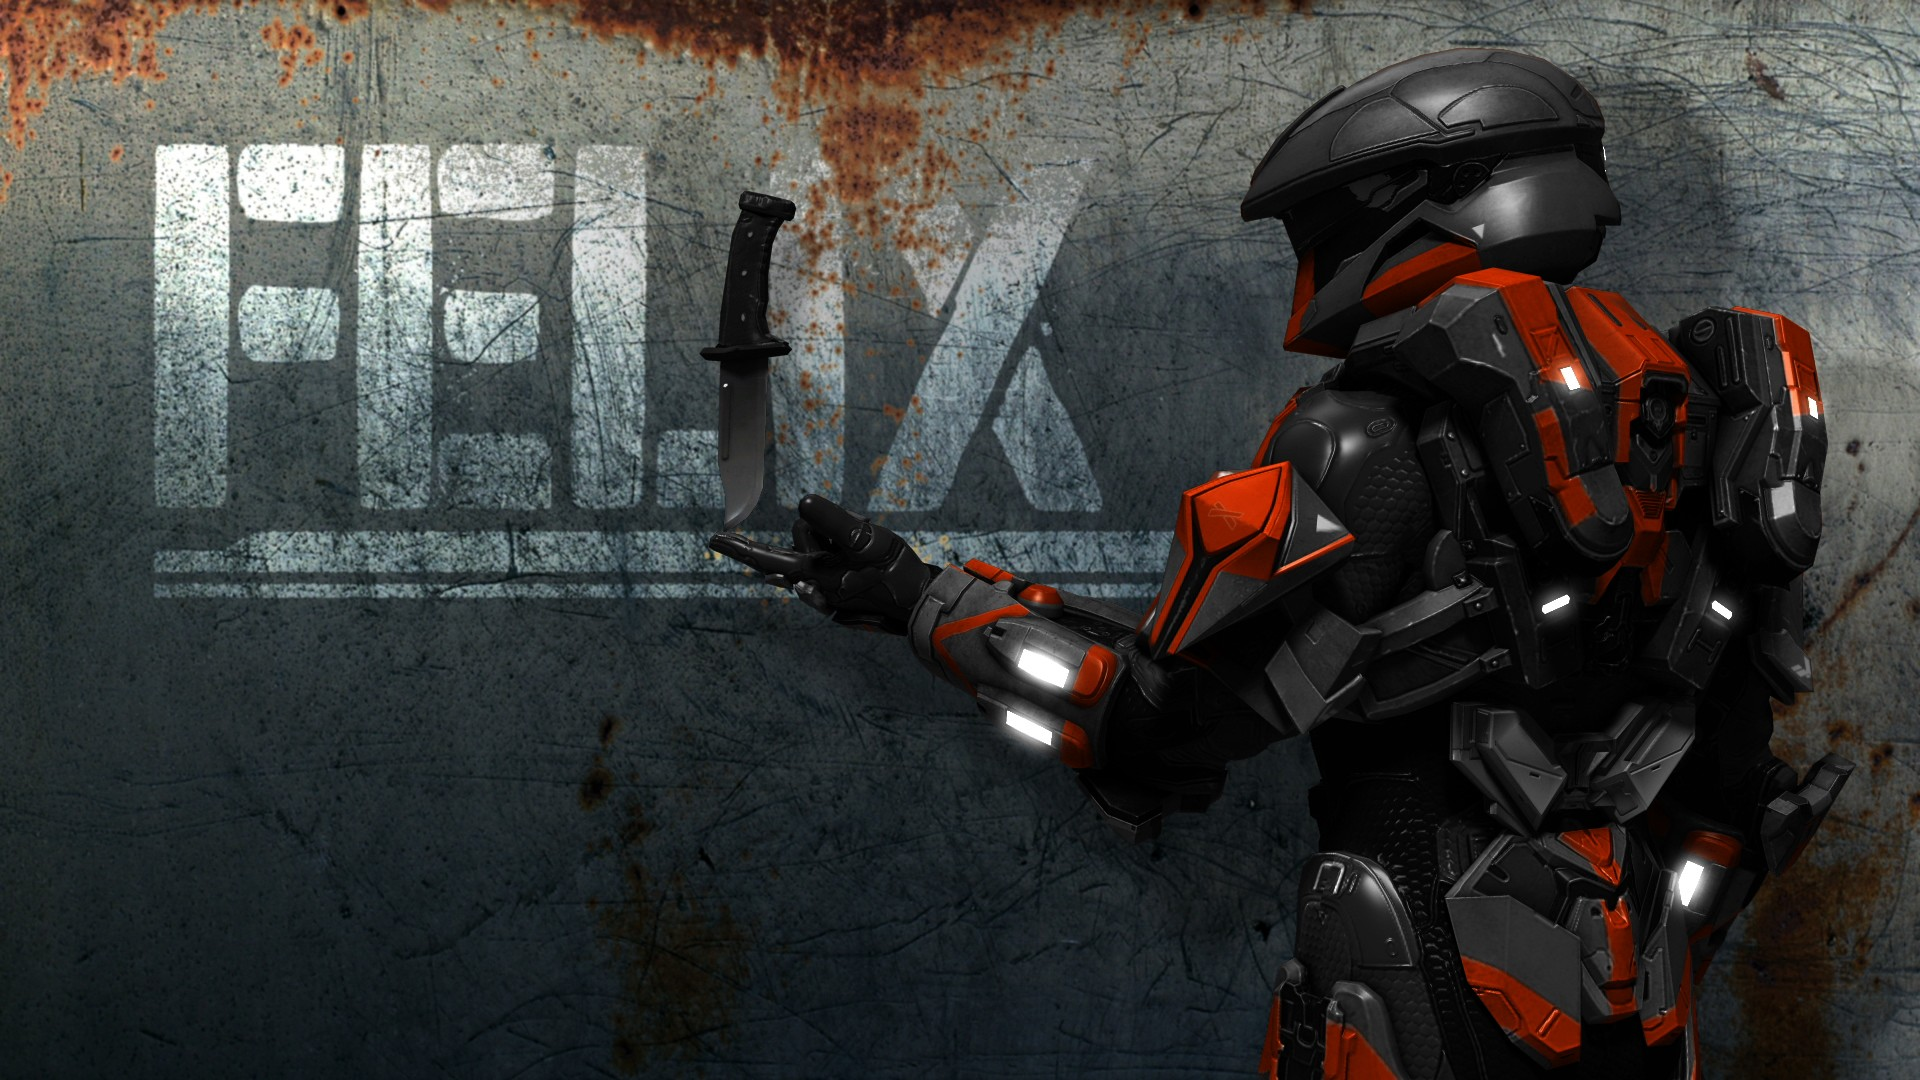 Red Vs Blue Wallpaper Download Free Stunning Backgrounds For